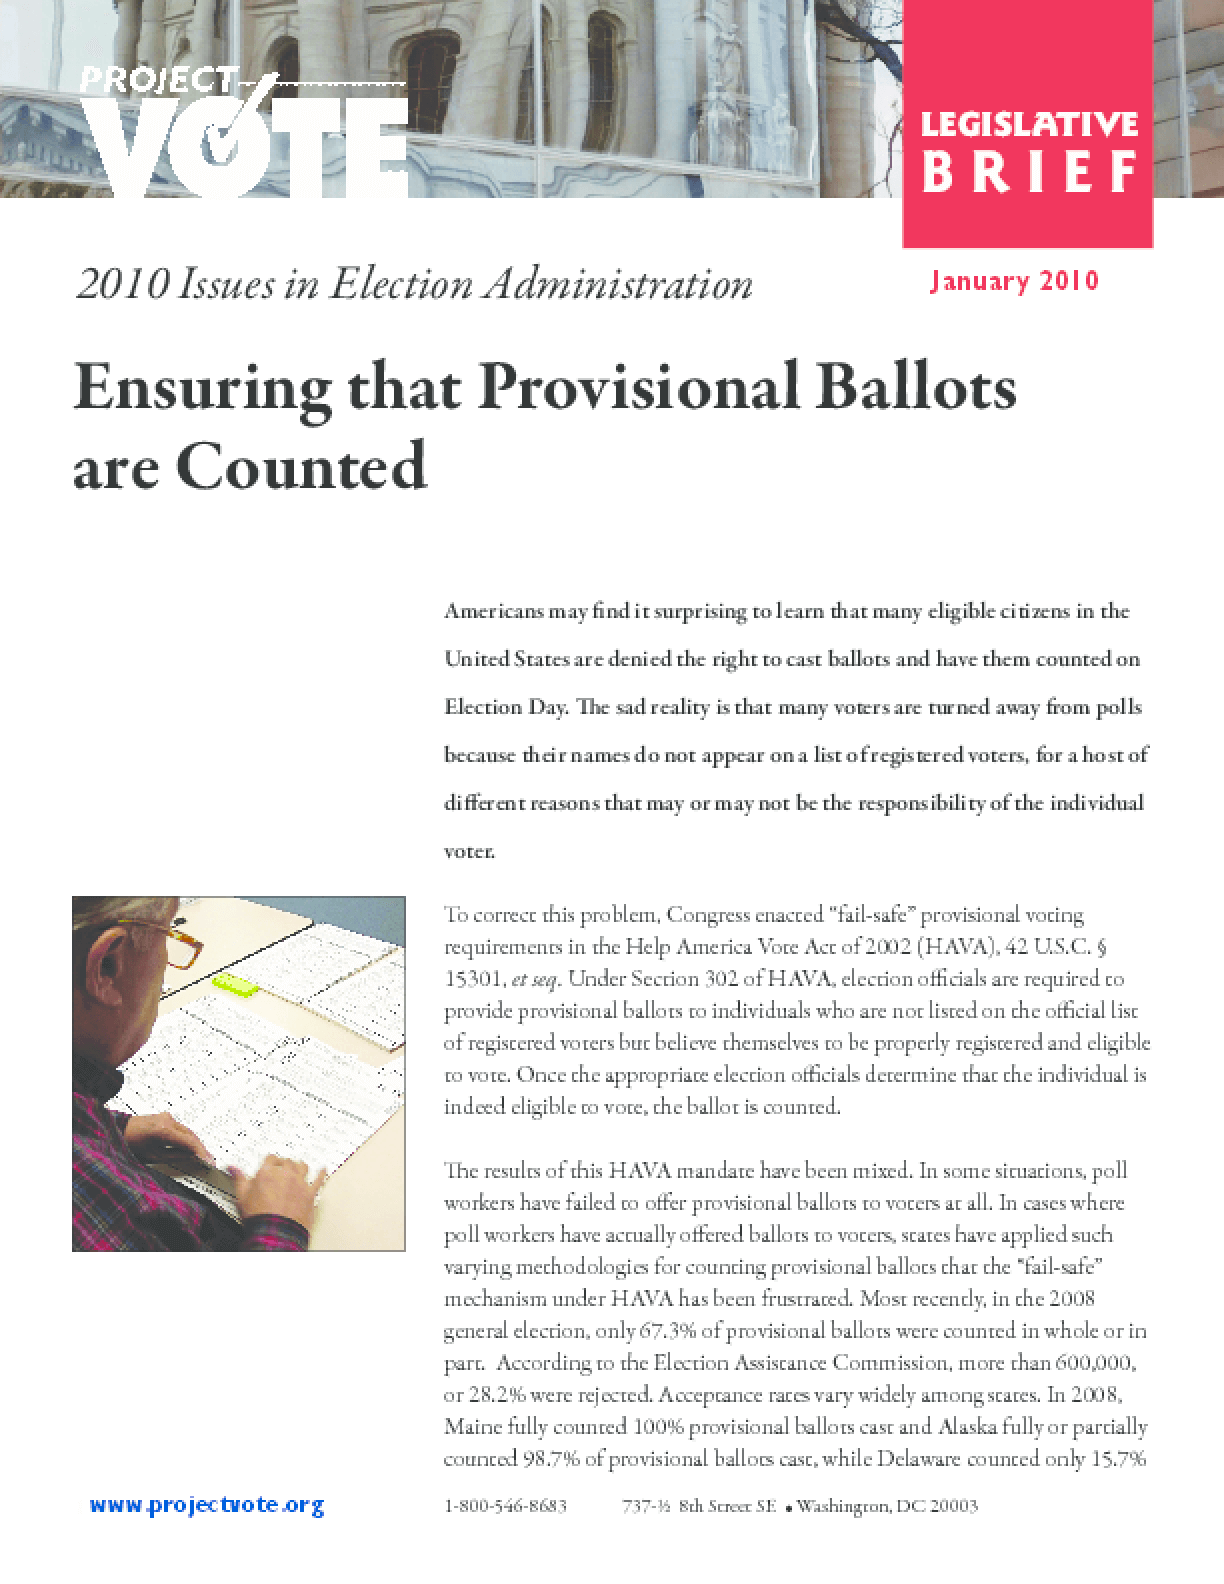 Ensuring that Provisional Ballots are Counted